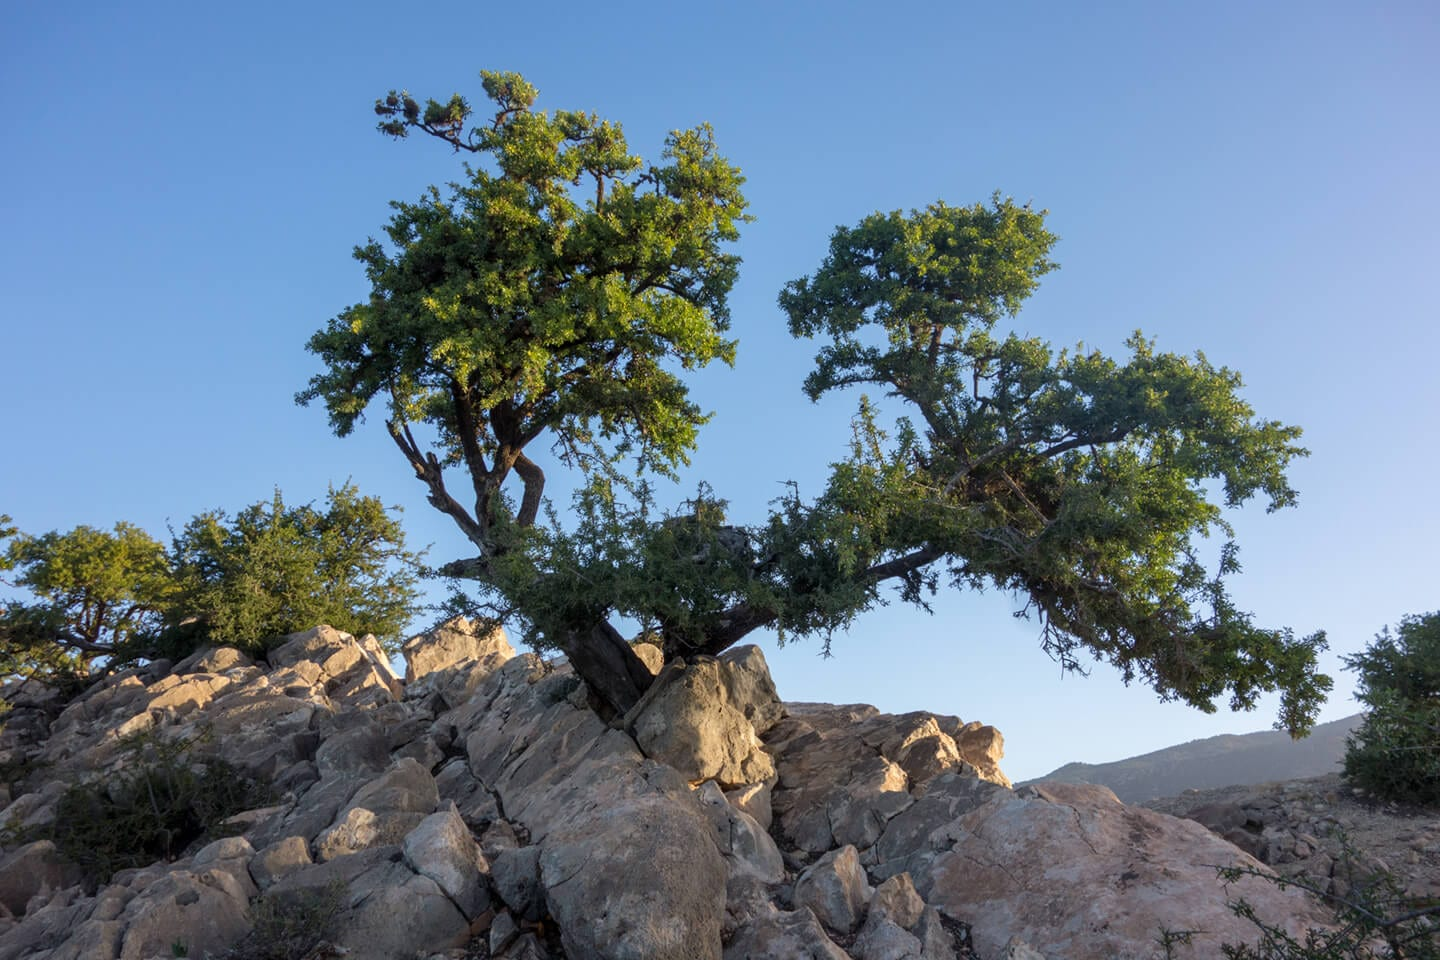 Magical old Argan Trees near the city of Aourir in Morocco